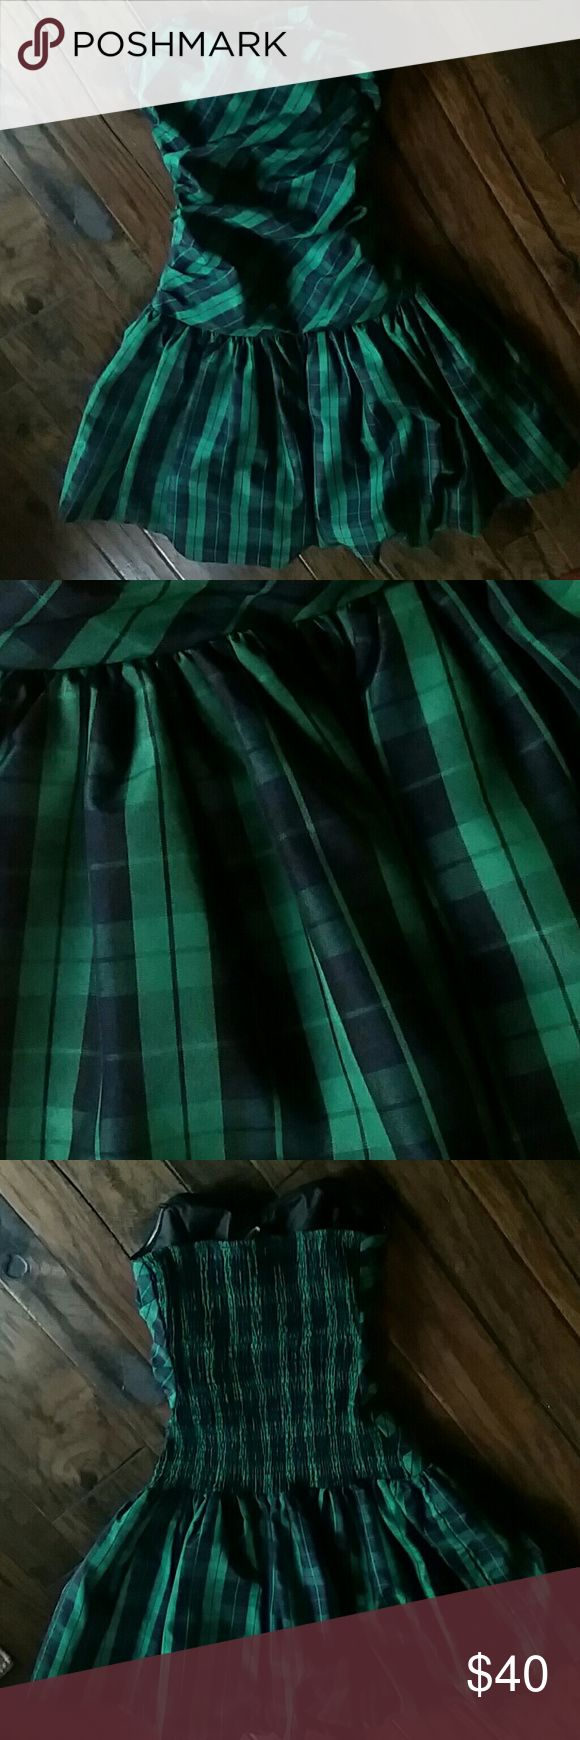 Strapless plaid bubble dress Green and blue plaid strapless bubble dress (ONLY WORN ONCE) Luella Bartley  Dresses Strapless